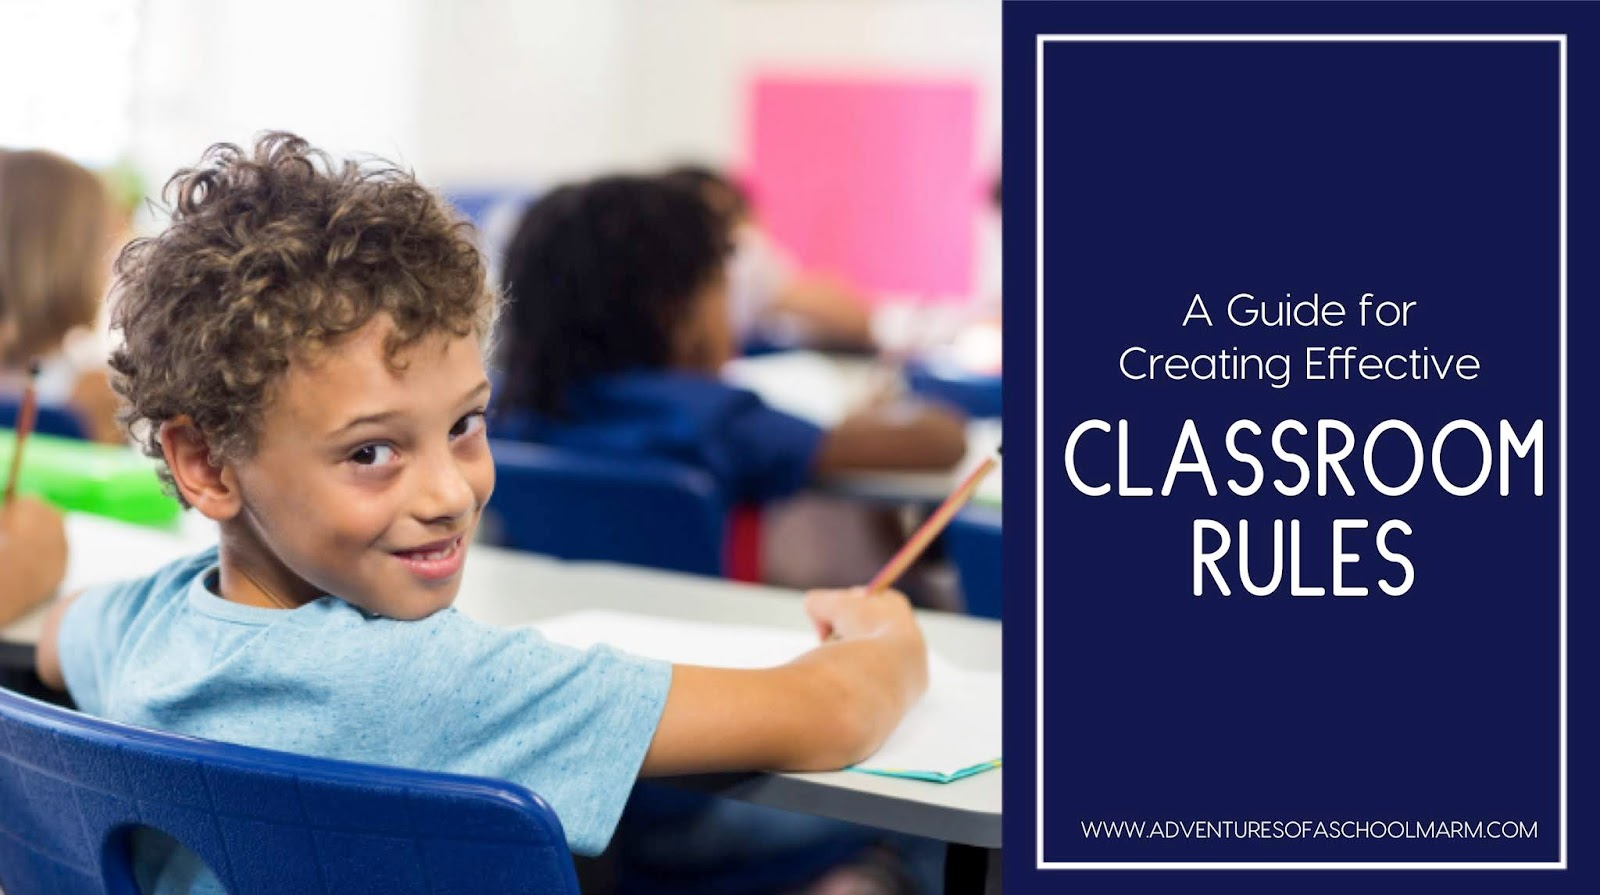 Use these tips for classroom rules to set your students up for success from day one!